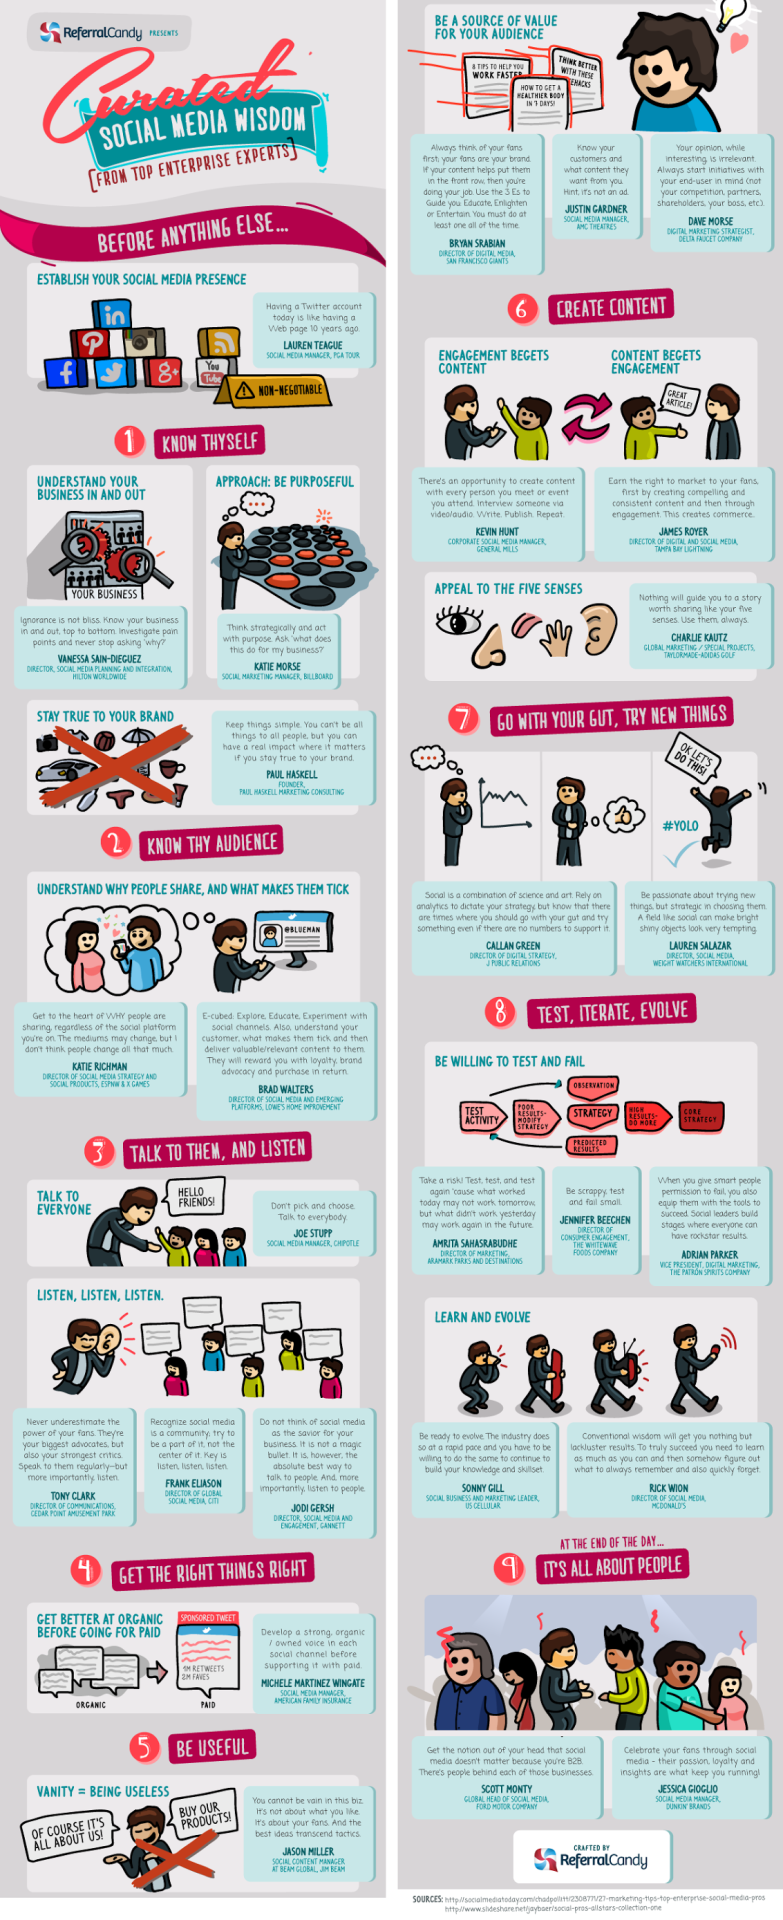 "27 Social Media Marketing Tips From Top Enterprise Experts To enlarge image -> i.imgur.com/ffE48UQ.png Ever wondered, what do top marketing experts know that the rest of us might not be so clear about? The folks at +ReferralCandy have shared an infographic that covers some of the highlights from New York Times best selling author +Jay Baer's ebook, in which he interviewed 27 top enterprise digital marketers about their wins and losses. Here are some key takeaways: ""Before anything else… establish your social media presence. Understand your business in and out. Understand why people share and what makes them tick. Talk to them and Listen. Get better at organic before going for paid. Be a source of a value for your audience. Create great content. Be willing to test and fail."" Pin it: http://www.pinterest.com/pin/381539399654399183/ Source: http://blog.referralcandy.com/2014/05/19/curated-social-media-wisdom-from-top-enterprise-experts-infographic/ #socialmediatips http://click-to-read-mo.re/p/7o3V/53413f12"